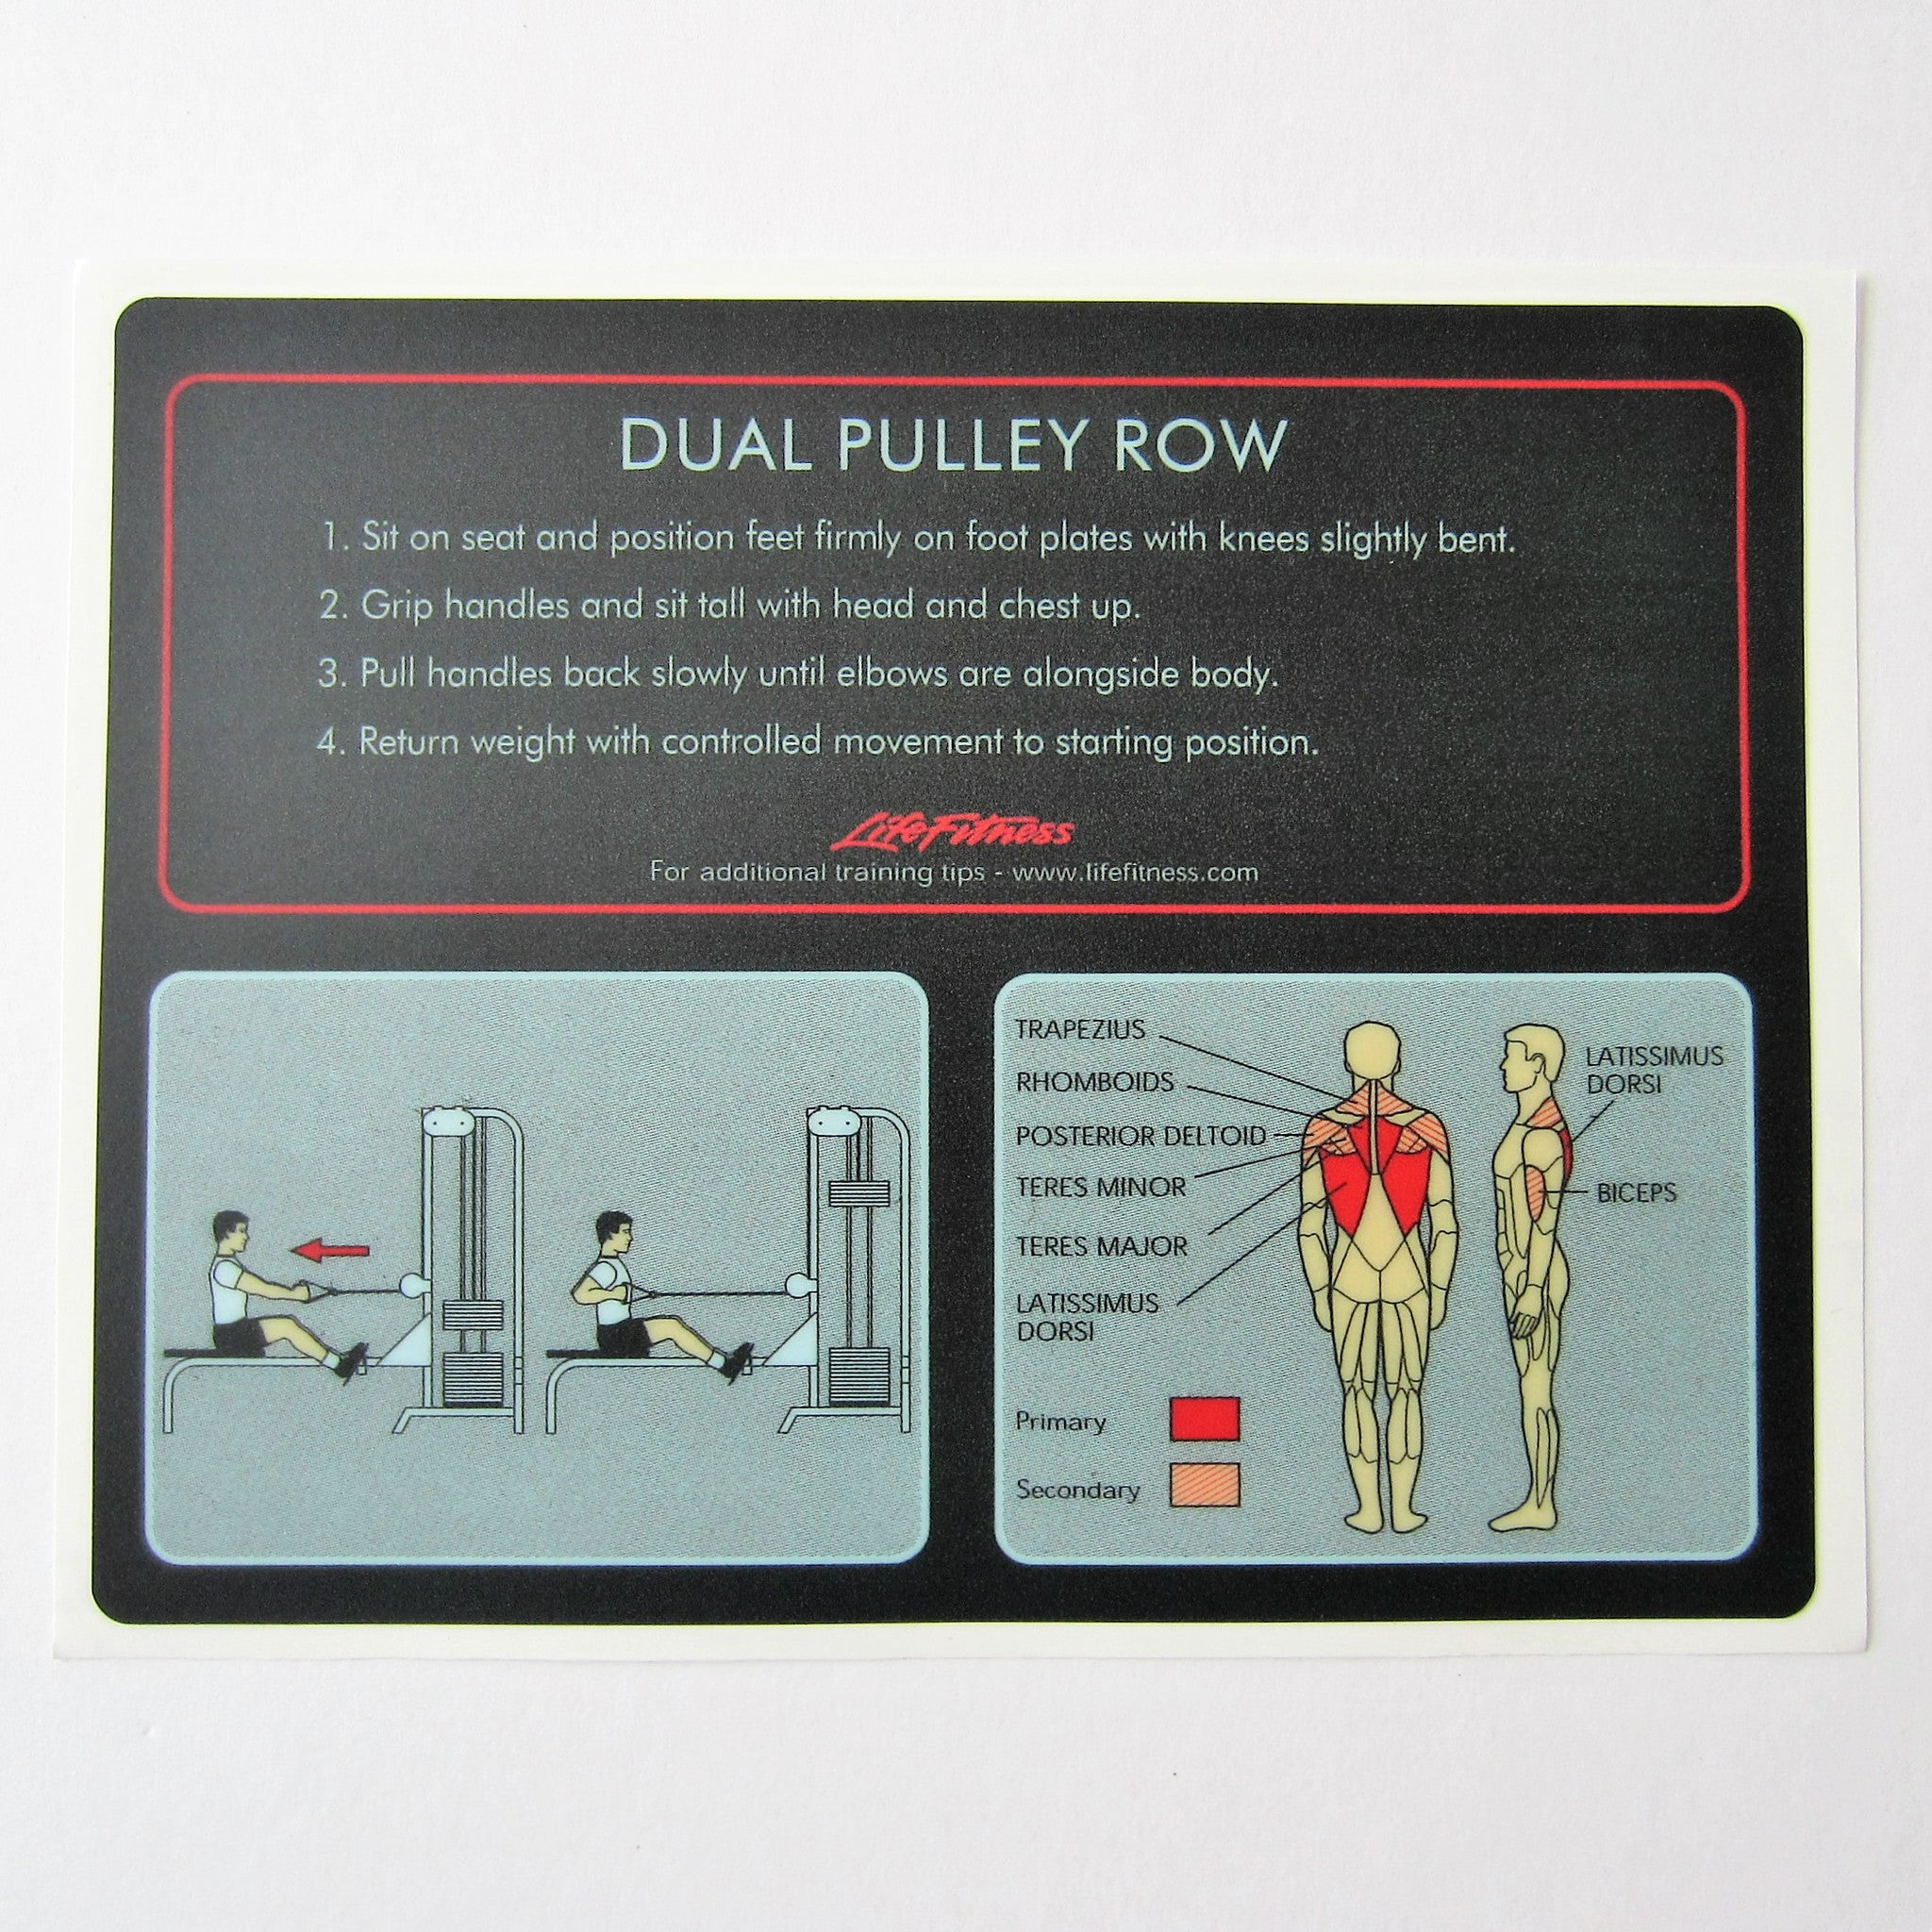 Pro 1 Dual Pulley Row